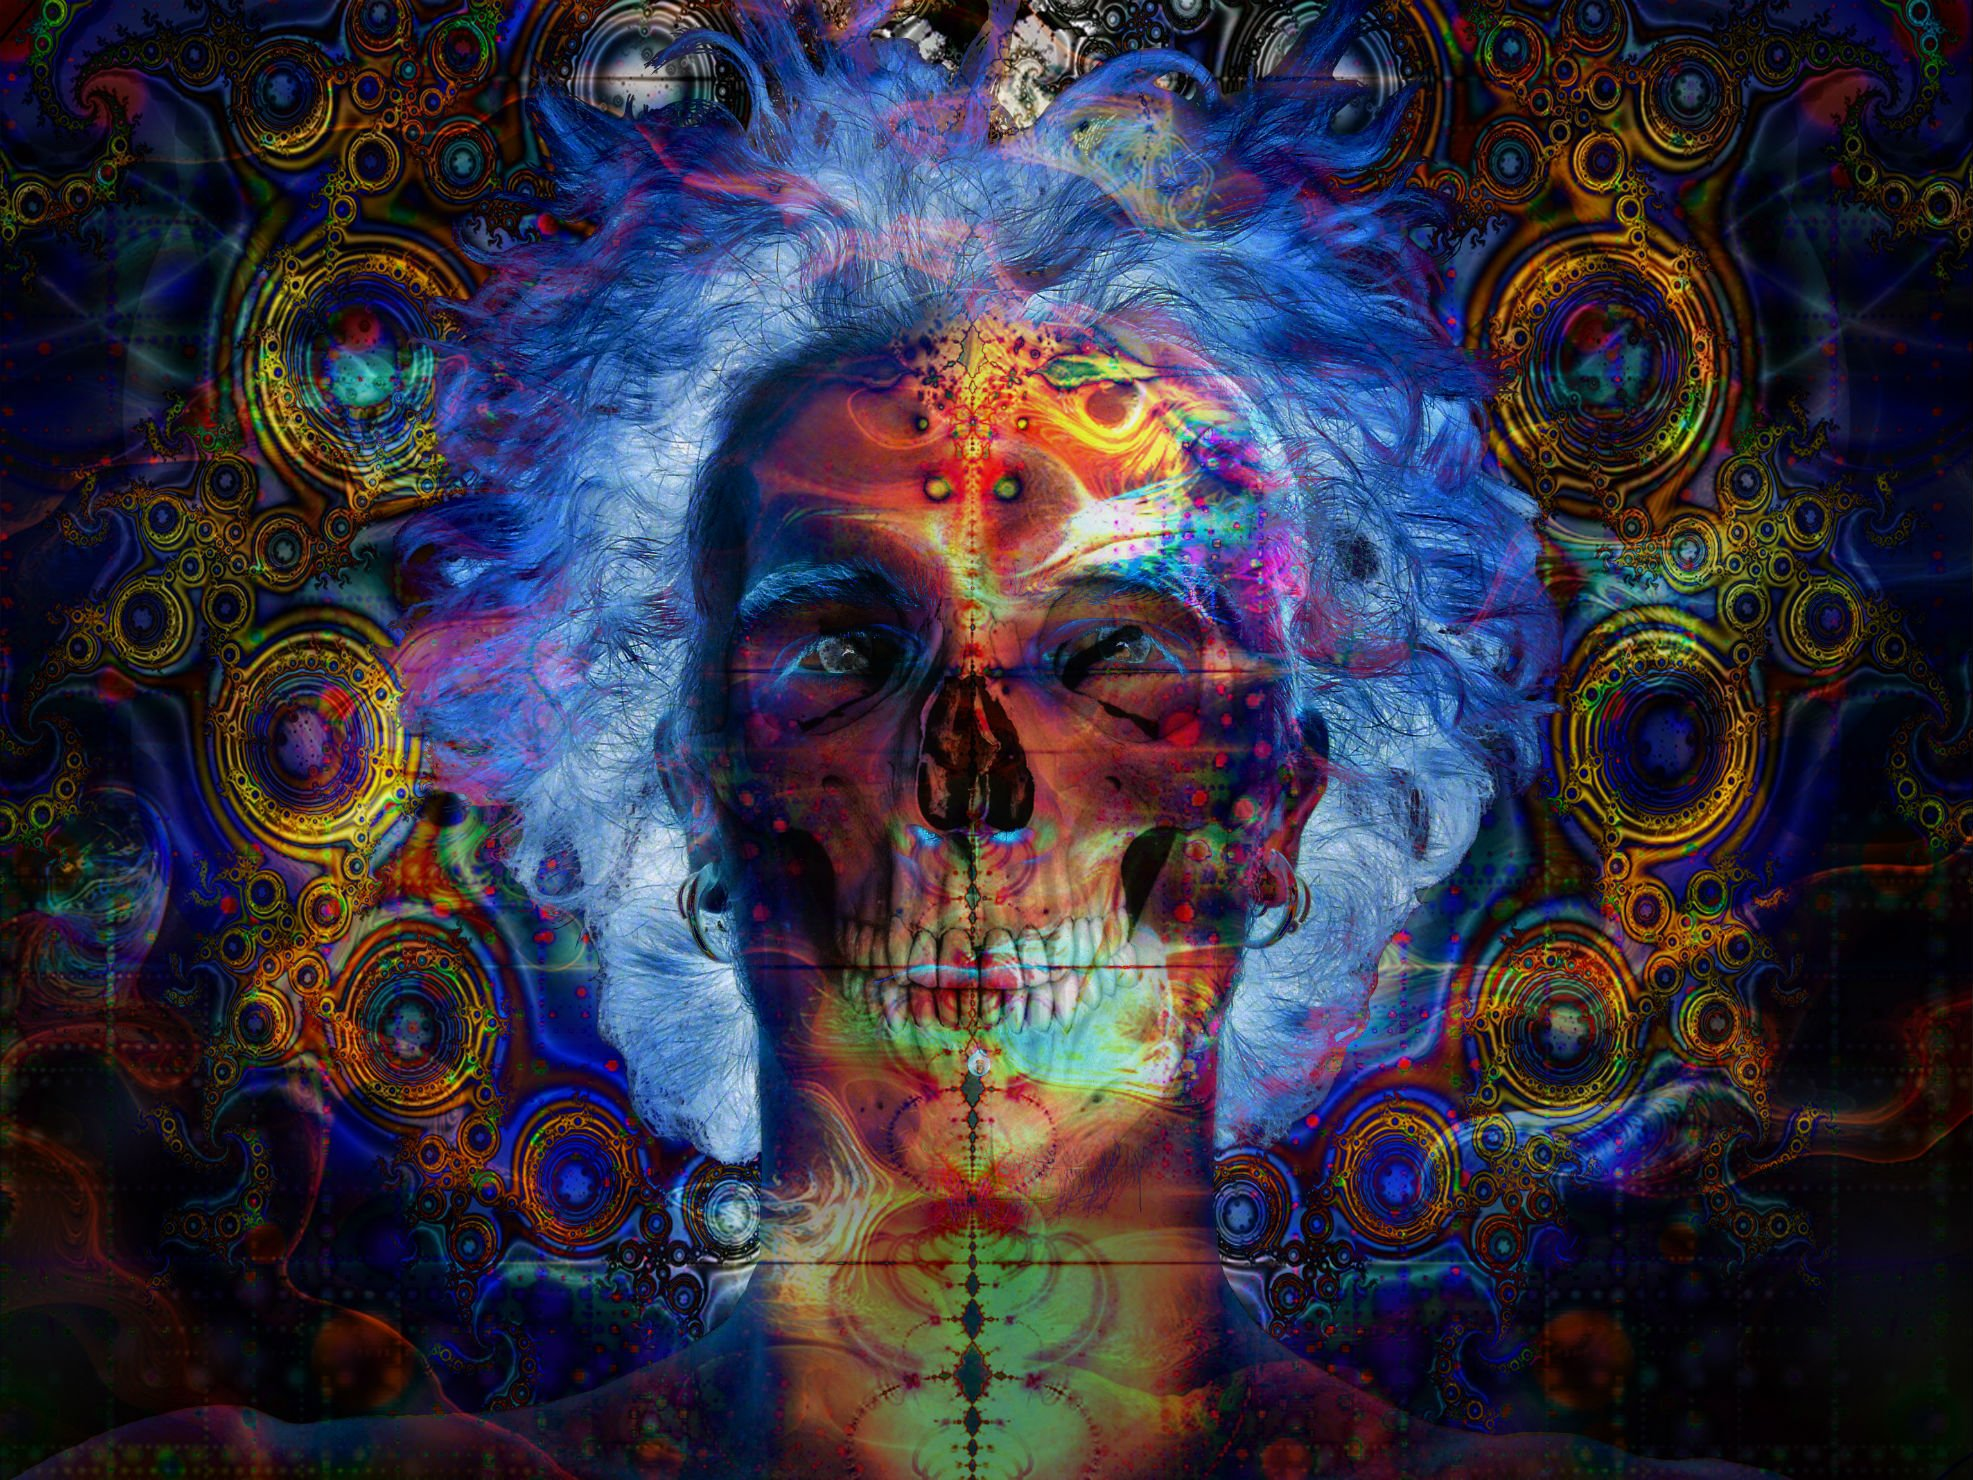 Psychedelic Computer Wallpapers Desktop Backgrounds 1973x1480 ID 1973x1480